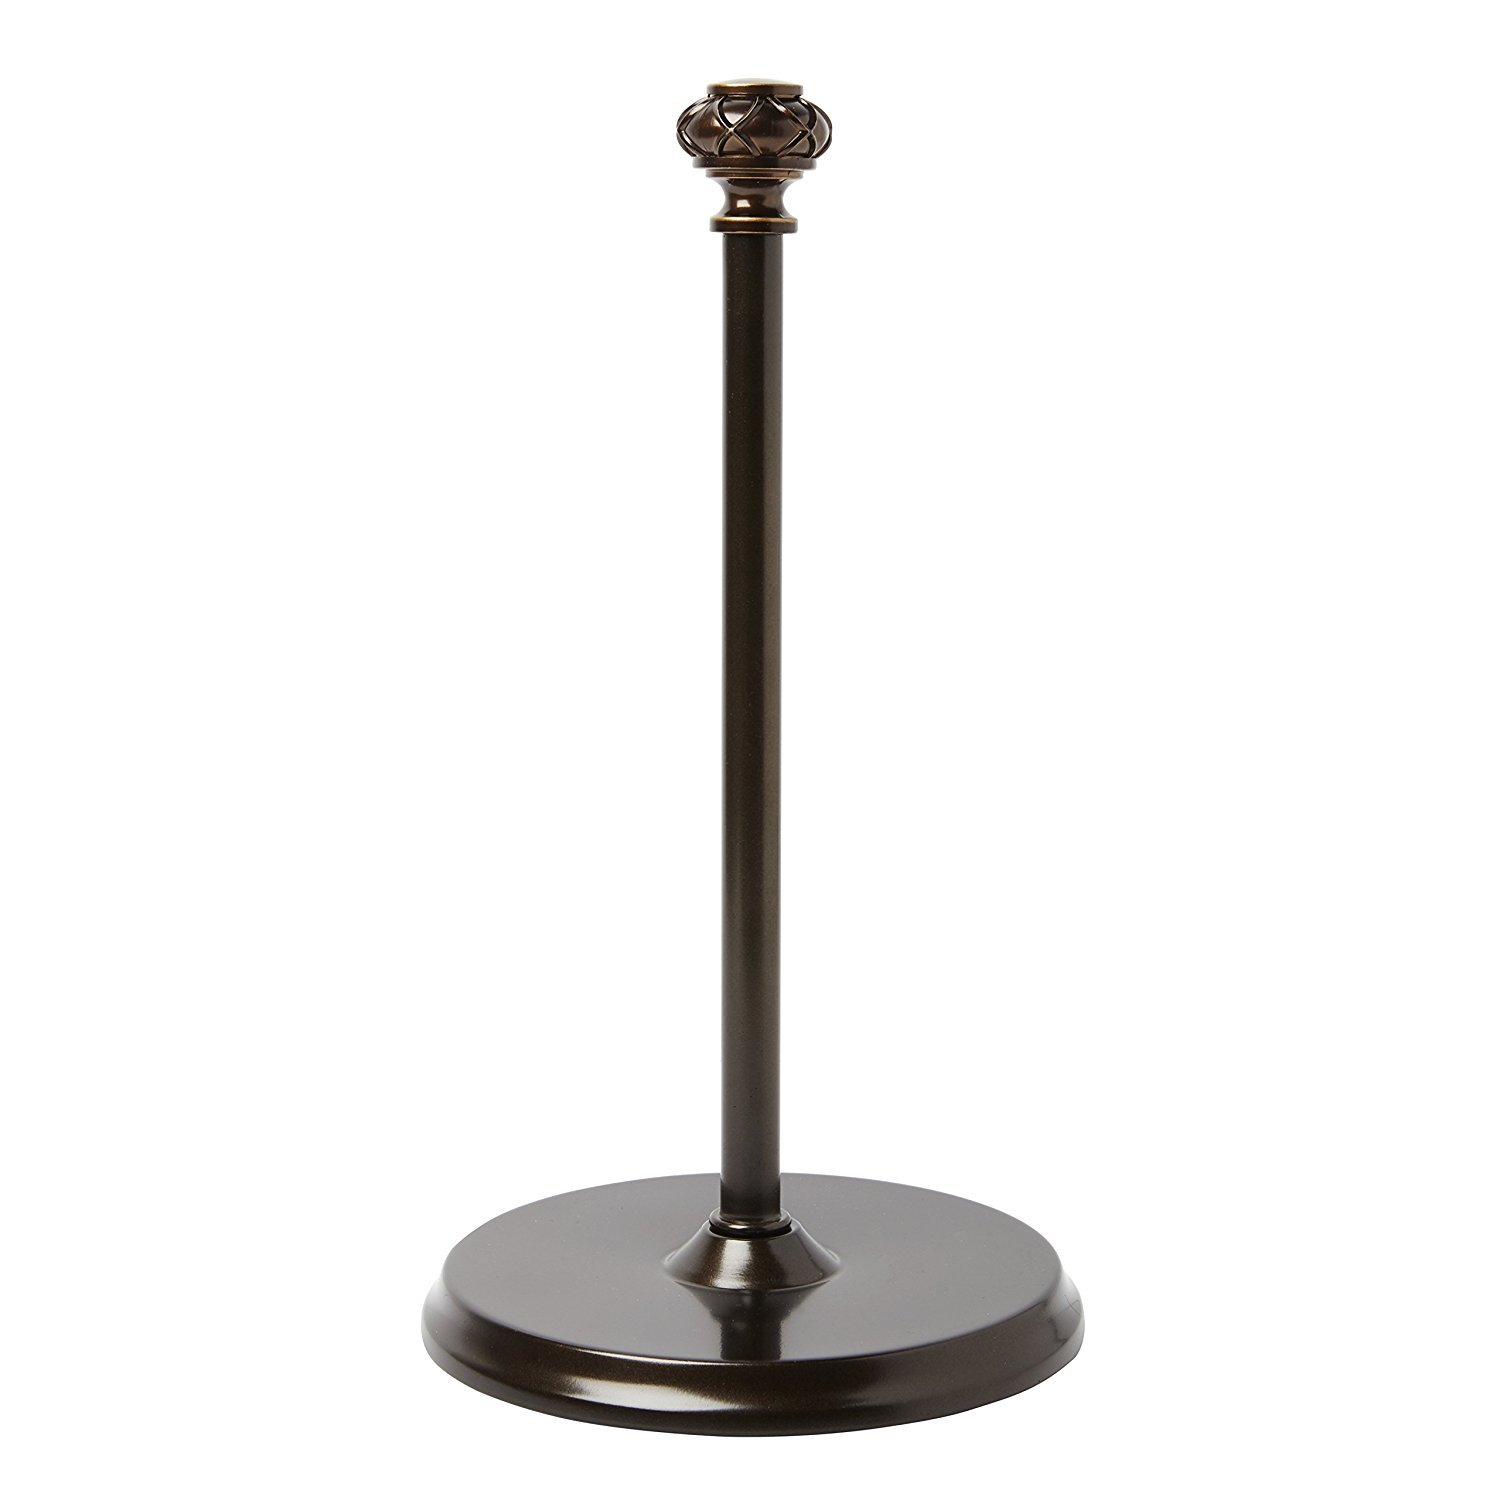 Paper Towel Holder - Umbra Loft Design Freestanding Towel Paper Holder – Elegant Bronze Finish - Heavy Duty to Pull Sheets with One Hand – Fits Most Towel Paper Roll Sizes - Non-Slip Grip Base for Kit